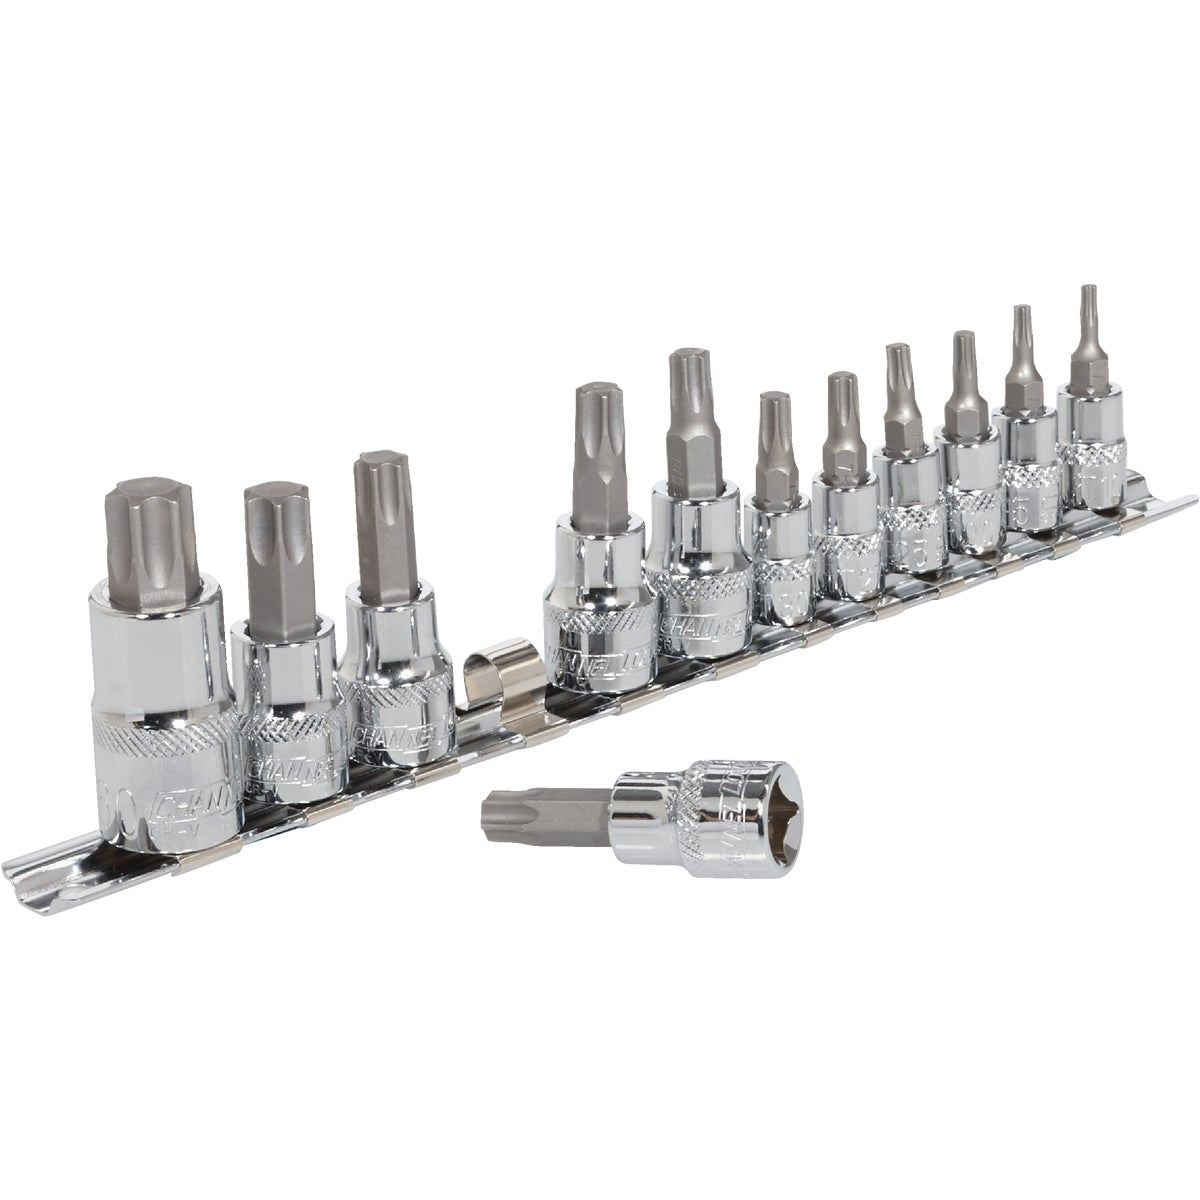 12PC TORX BIT SOCKET SET - 371106 by Bwt Inc